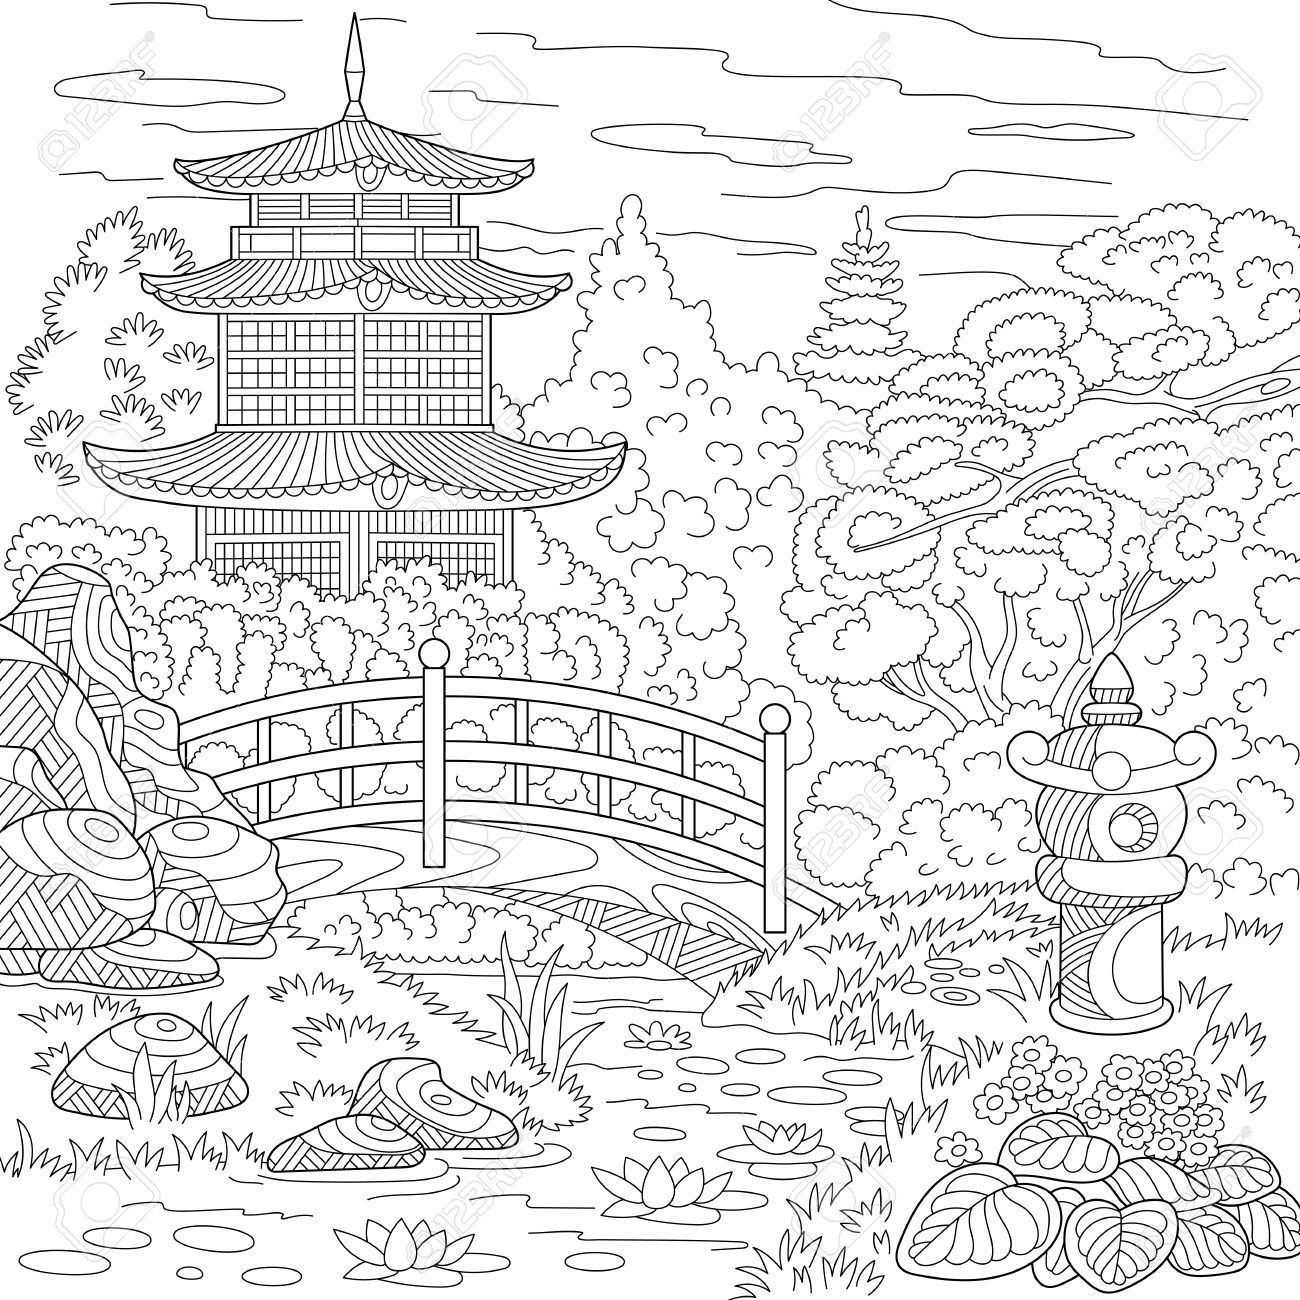 Japanese Coloring Book Pages.  temple japanese or chinese tower pagoda Landscape with trees lake stones flowers Freehand sketch for adult anti stress coloring book page 61801782 Stylized oriental